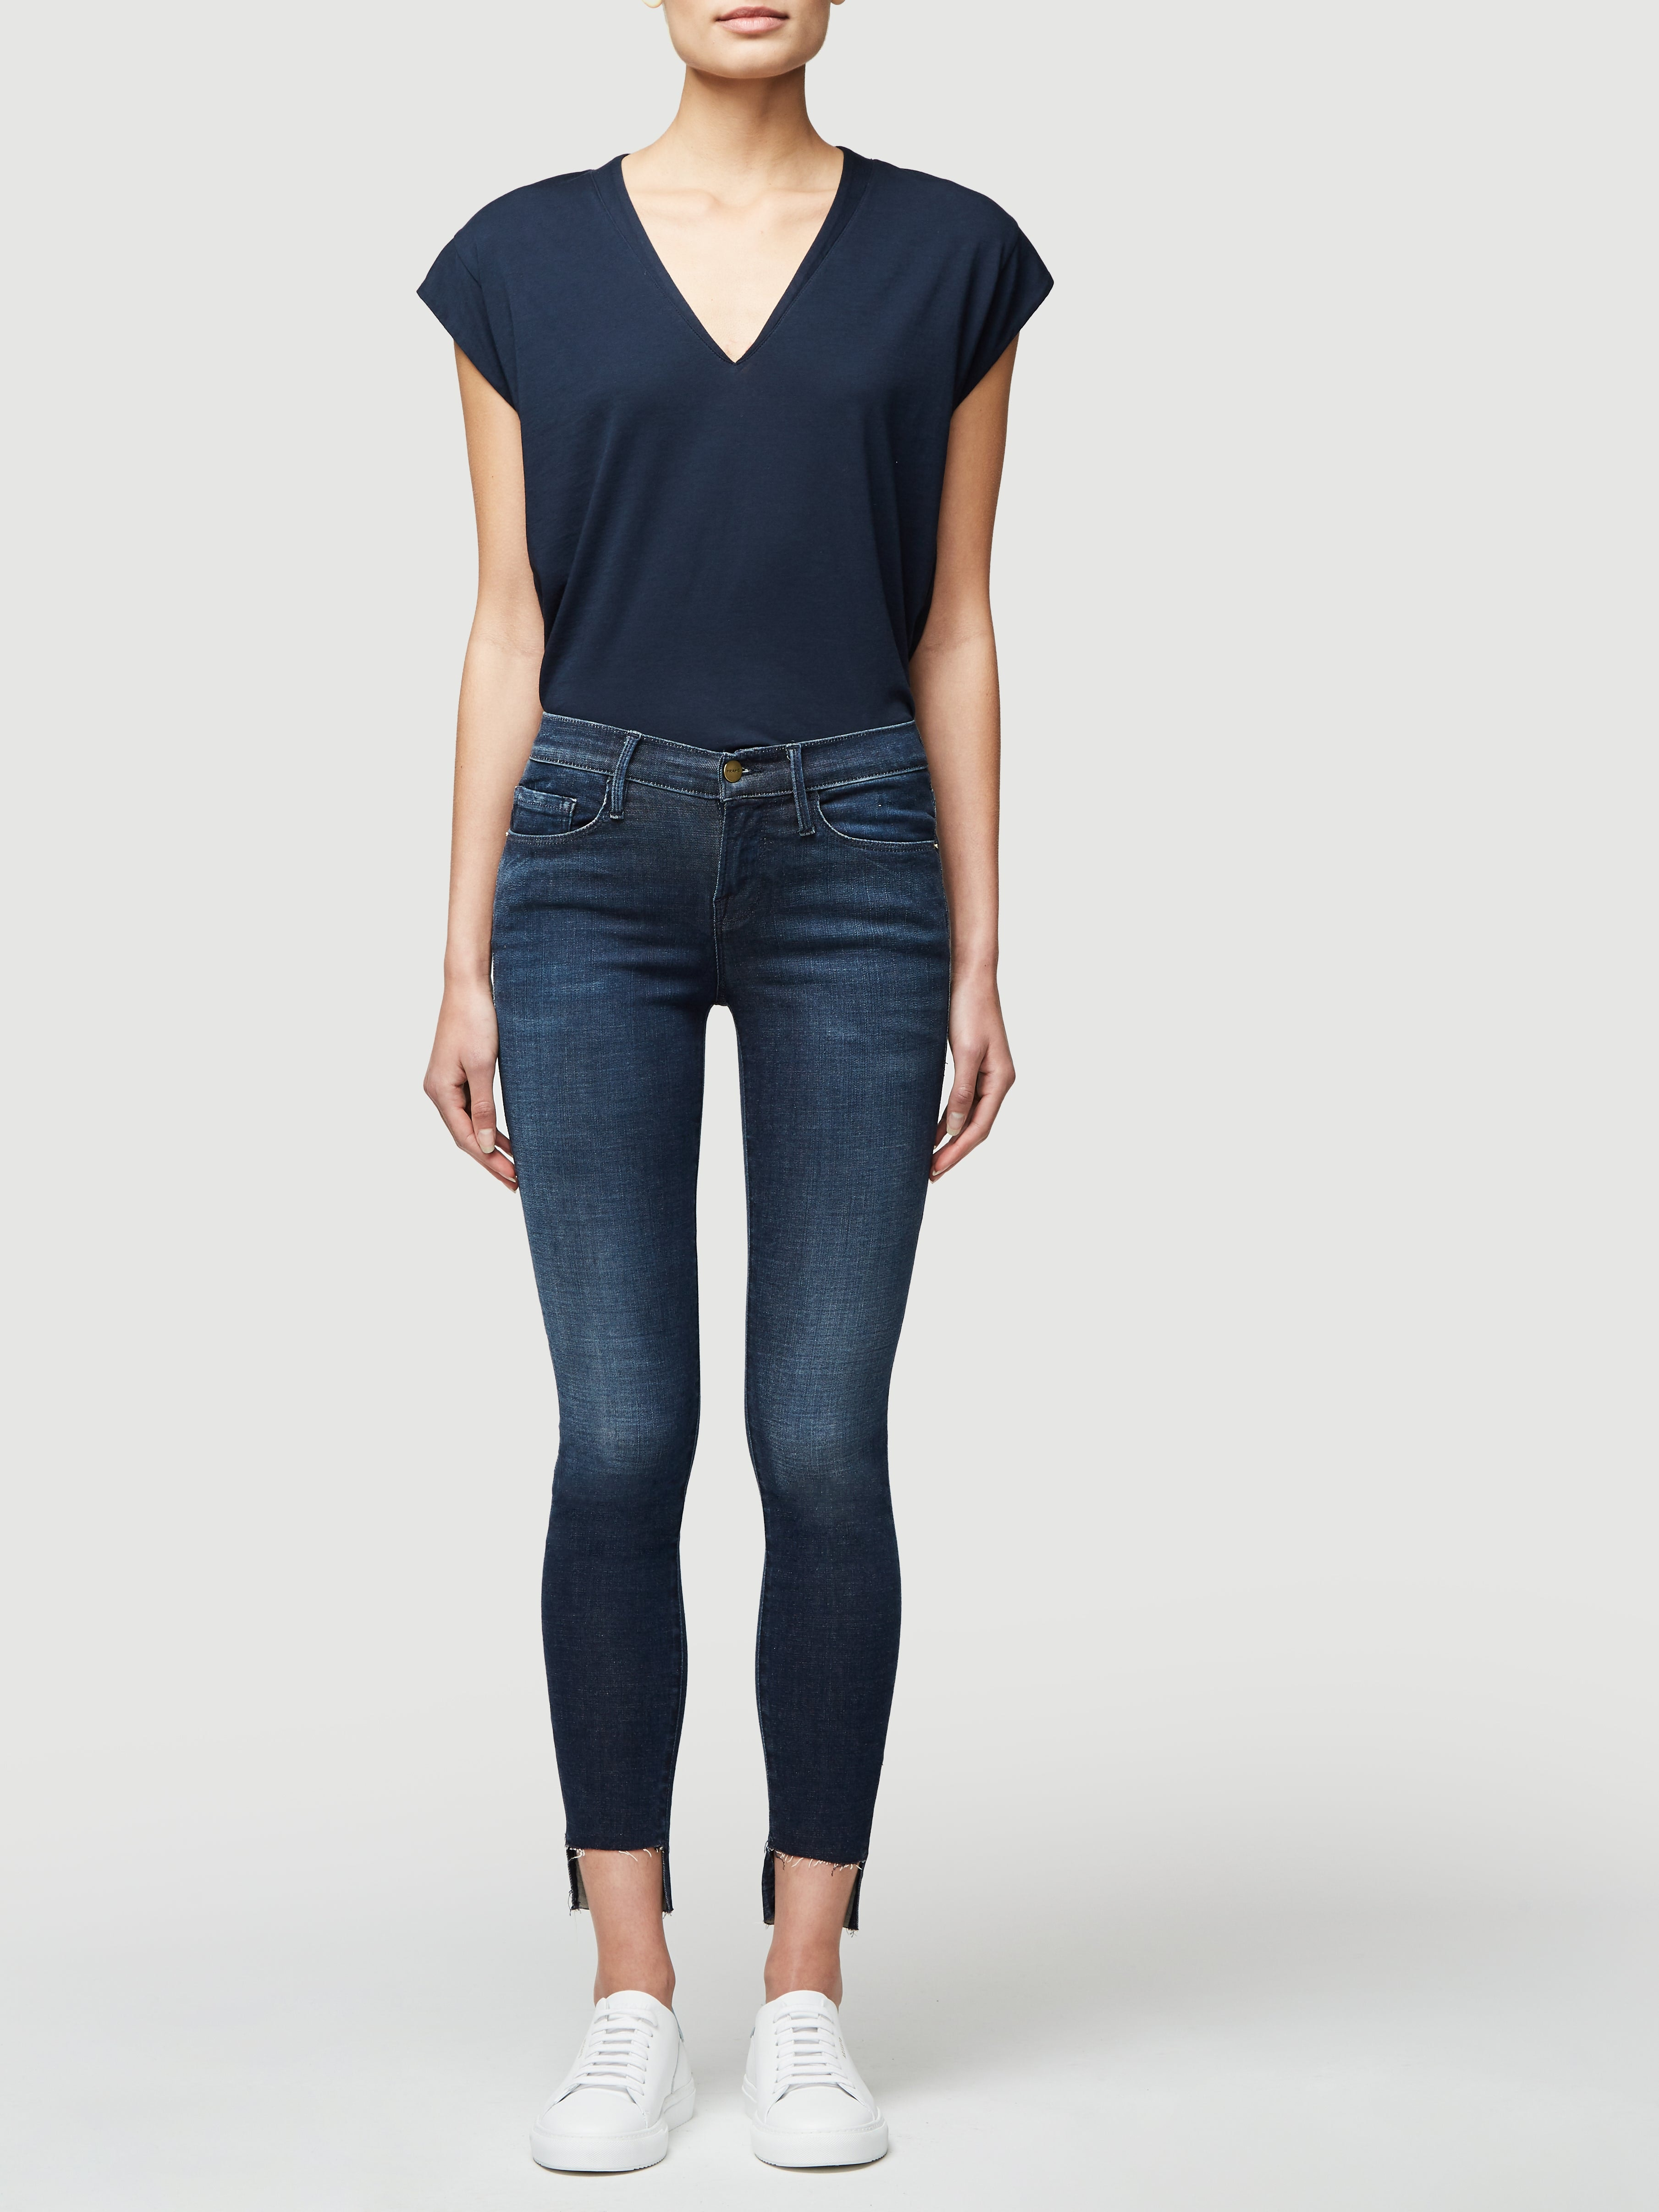 Tee front full body view